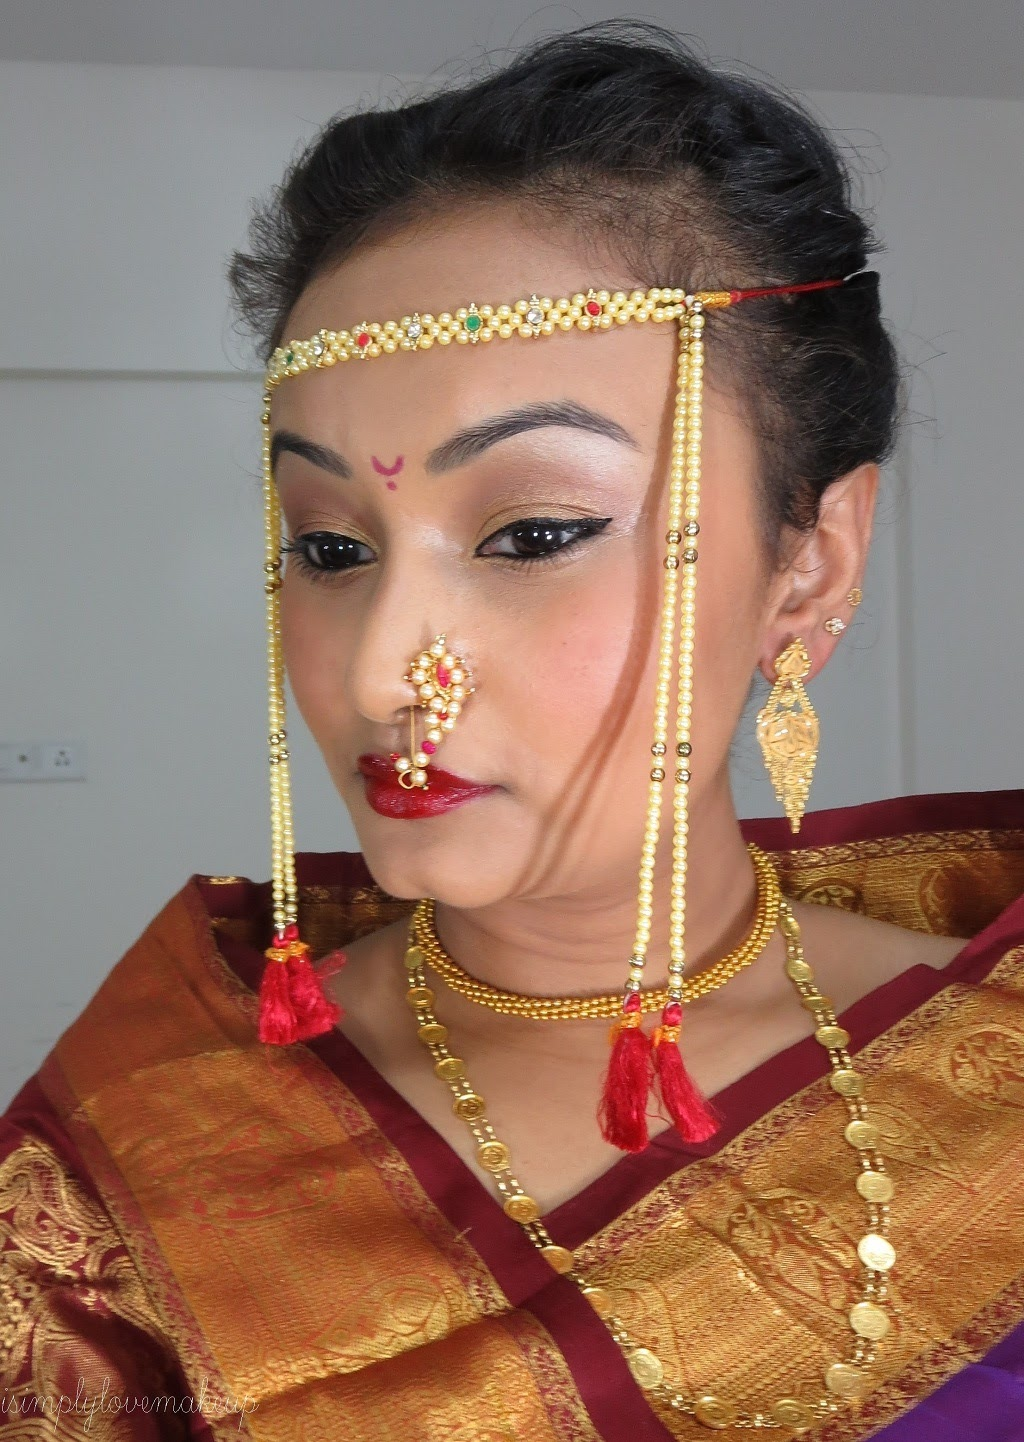 Bridal beauty tutorial for a bridal eye makeup that goes with lotd tutorial indian bridal eye makeup baditri Images